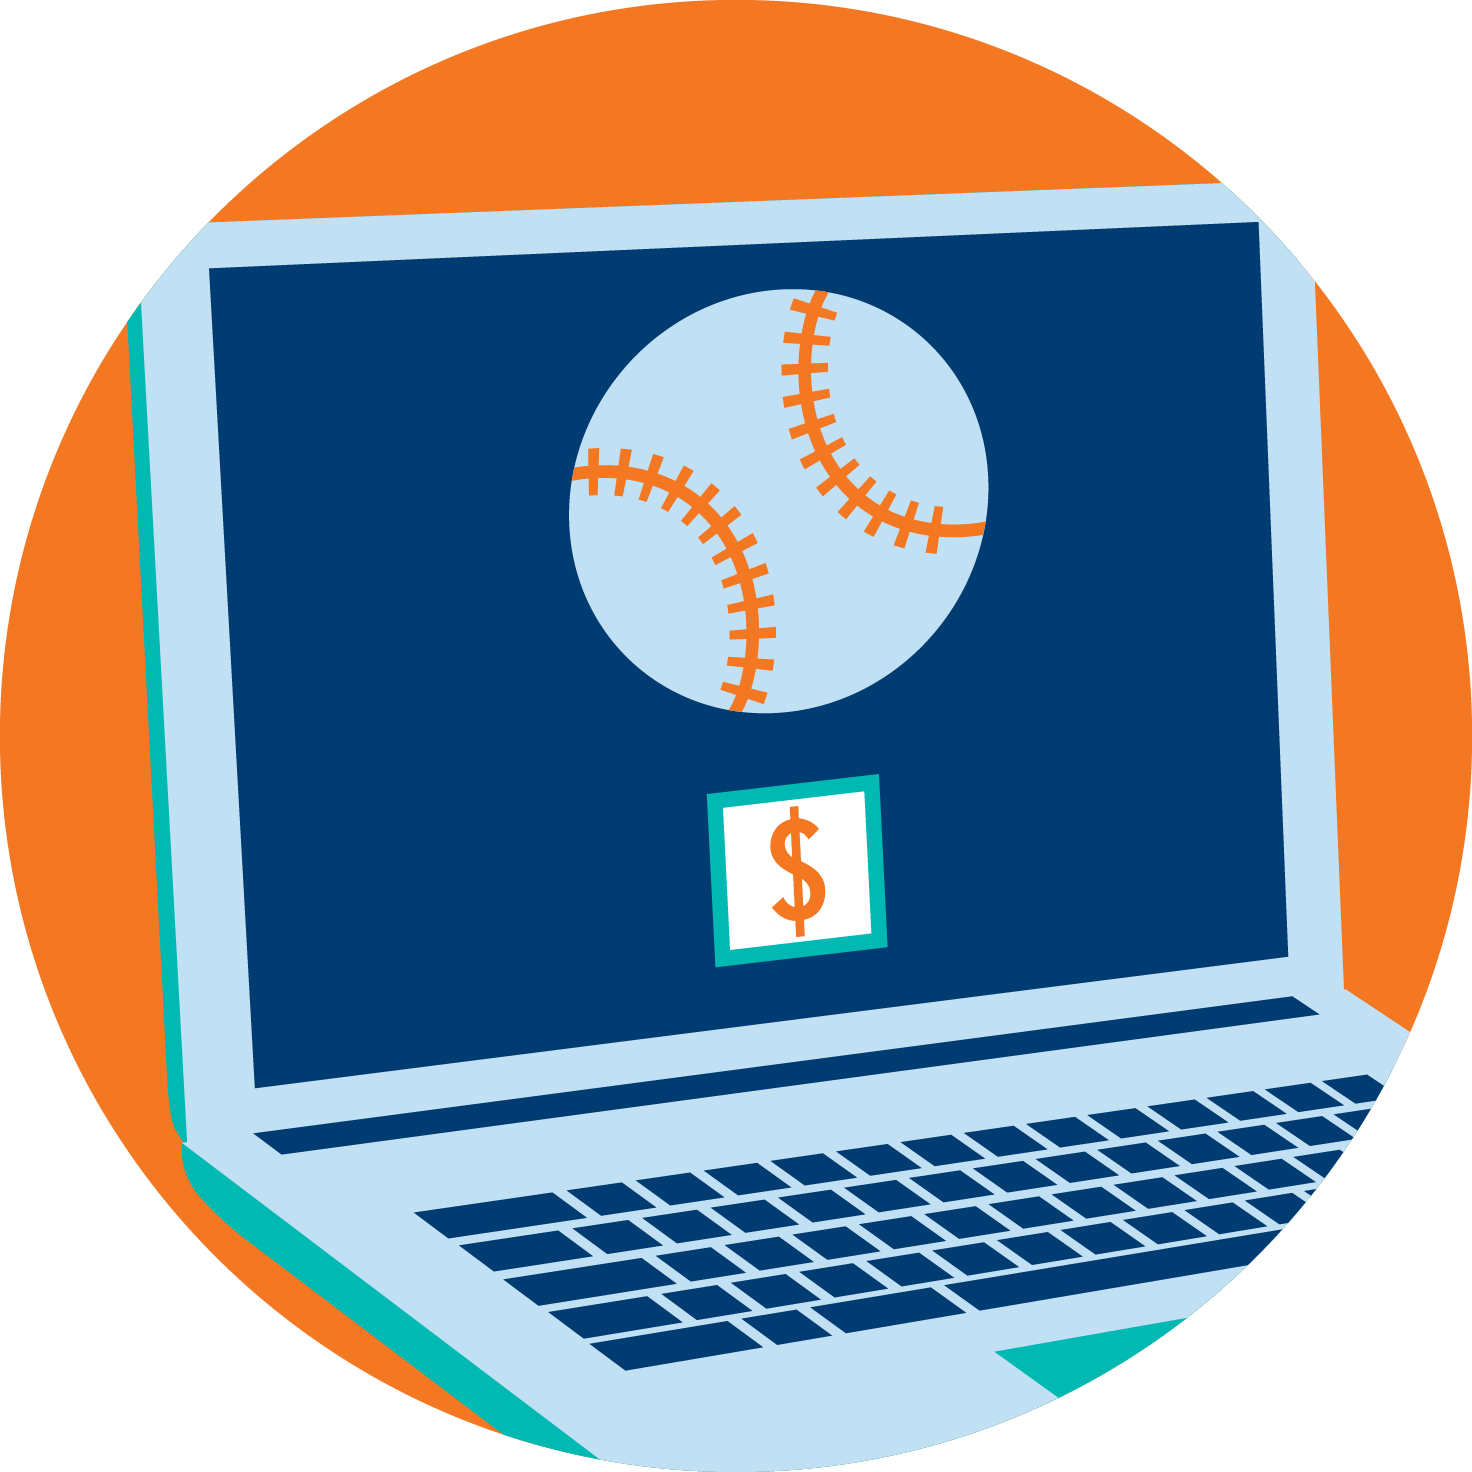 A laptop is shown with one baseball and a box filled in with a dollar sign, signifying one bet being made.